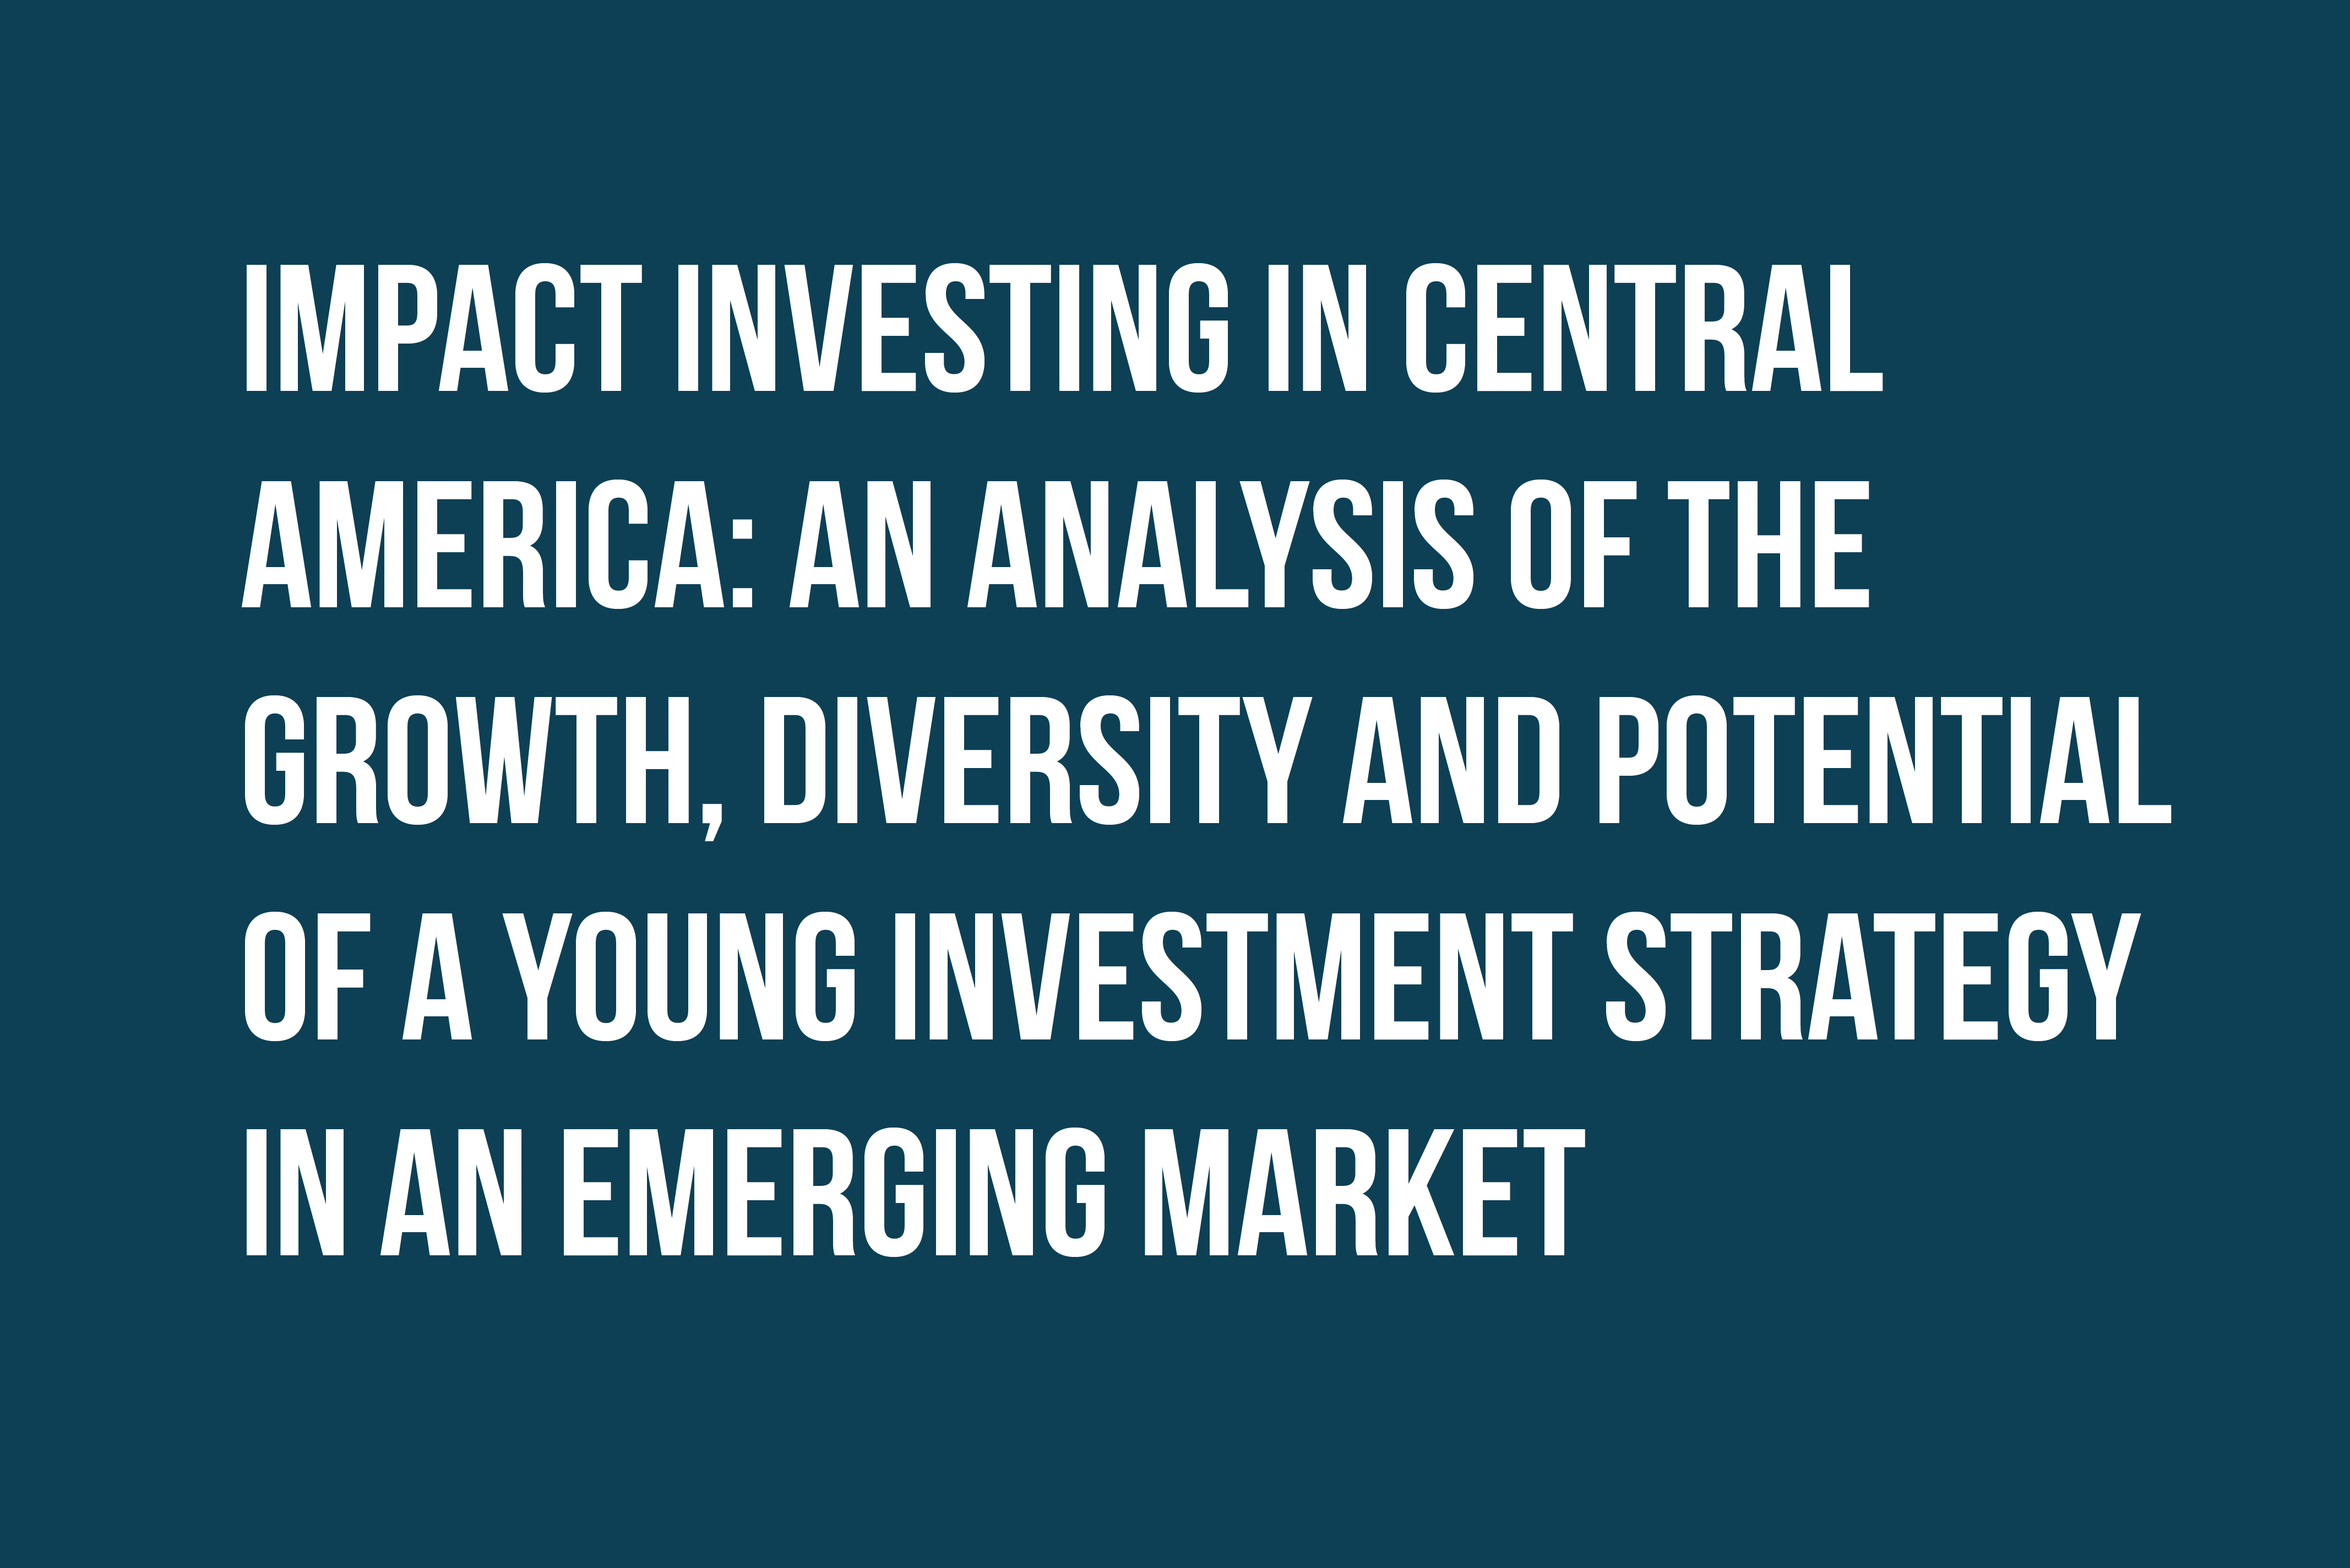 Impact Investing in Central America: An Analysis of the Growth, Diversity and Potential of a Young Investment Strategy in an Emerging Market